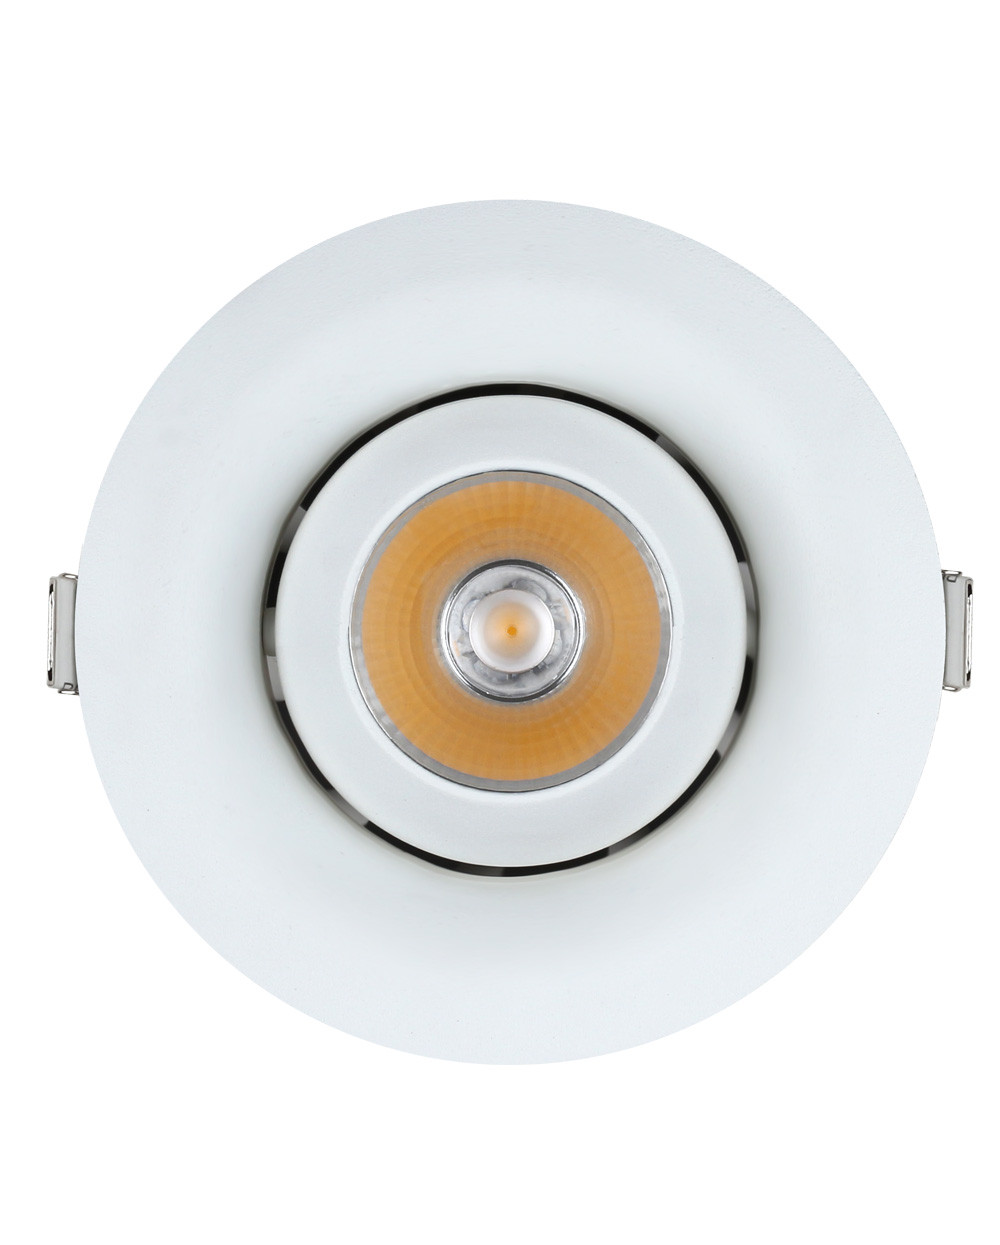 KAYLE-R 20W Oynar Başlı led Downlight - ALC.658-A